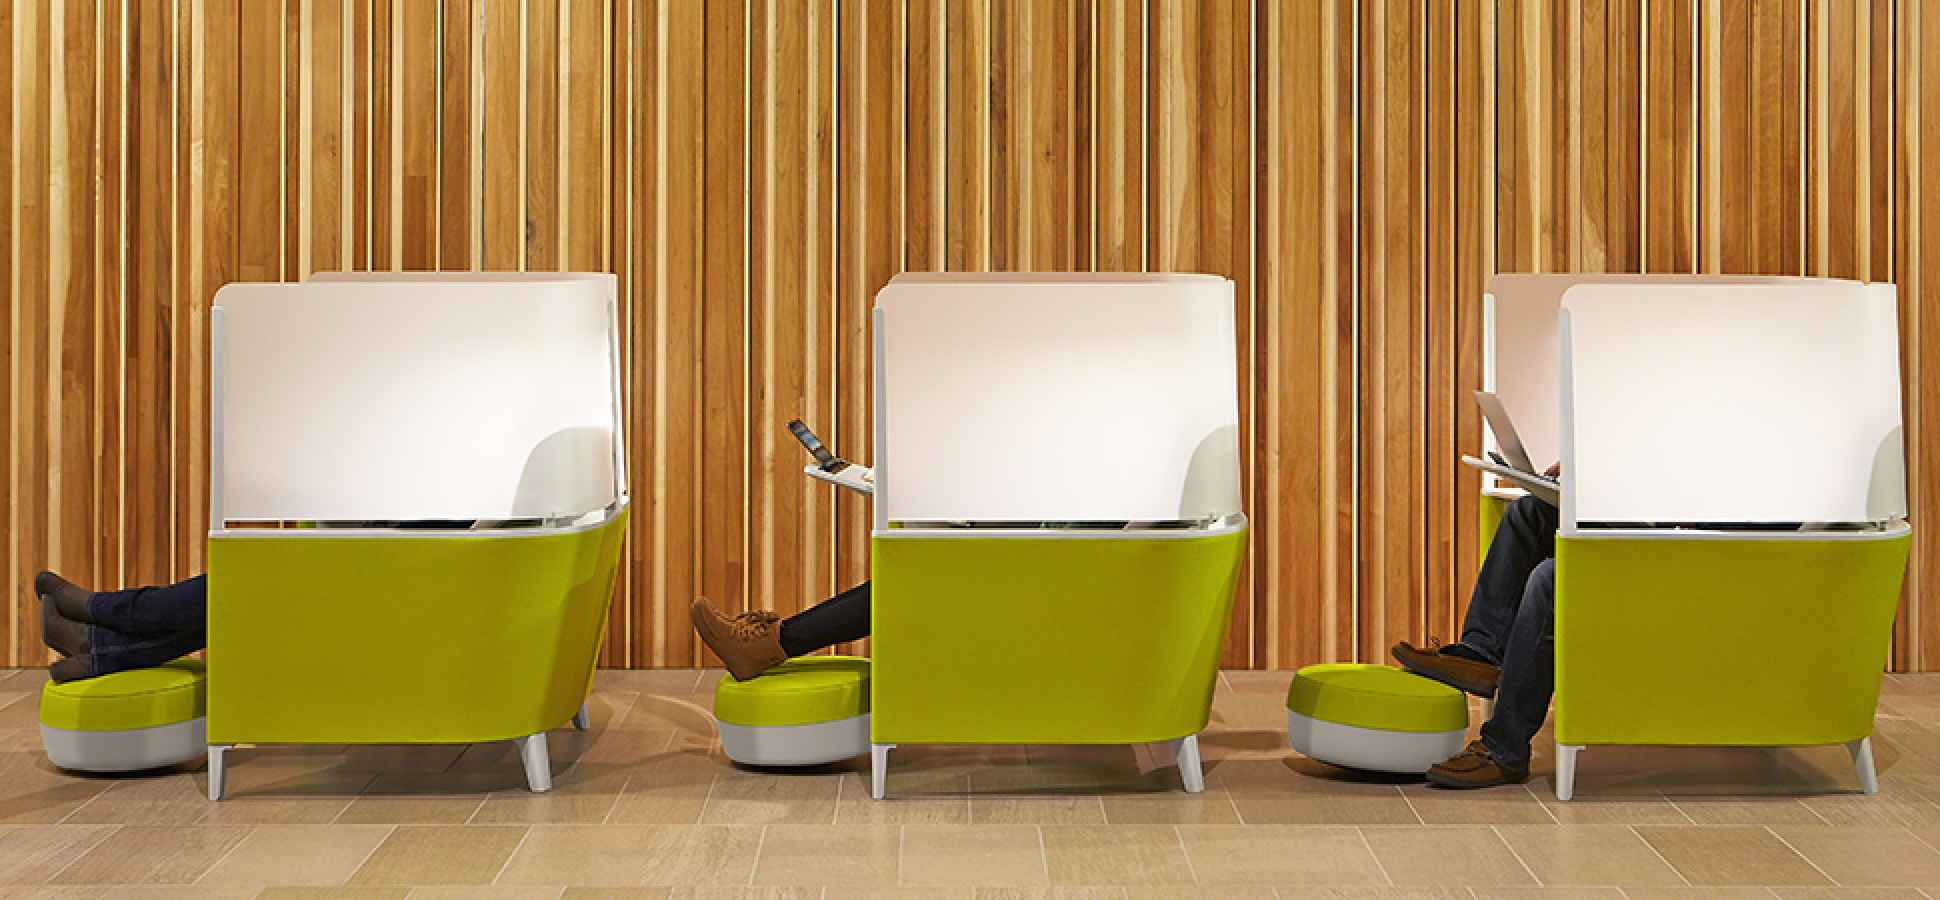 This Work Pod Will Help You Focus Like Never Before